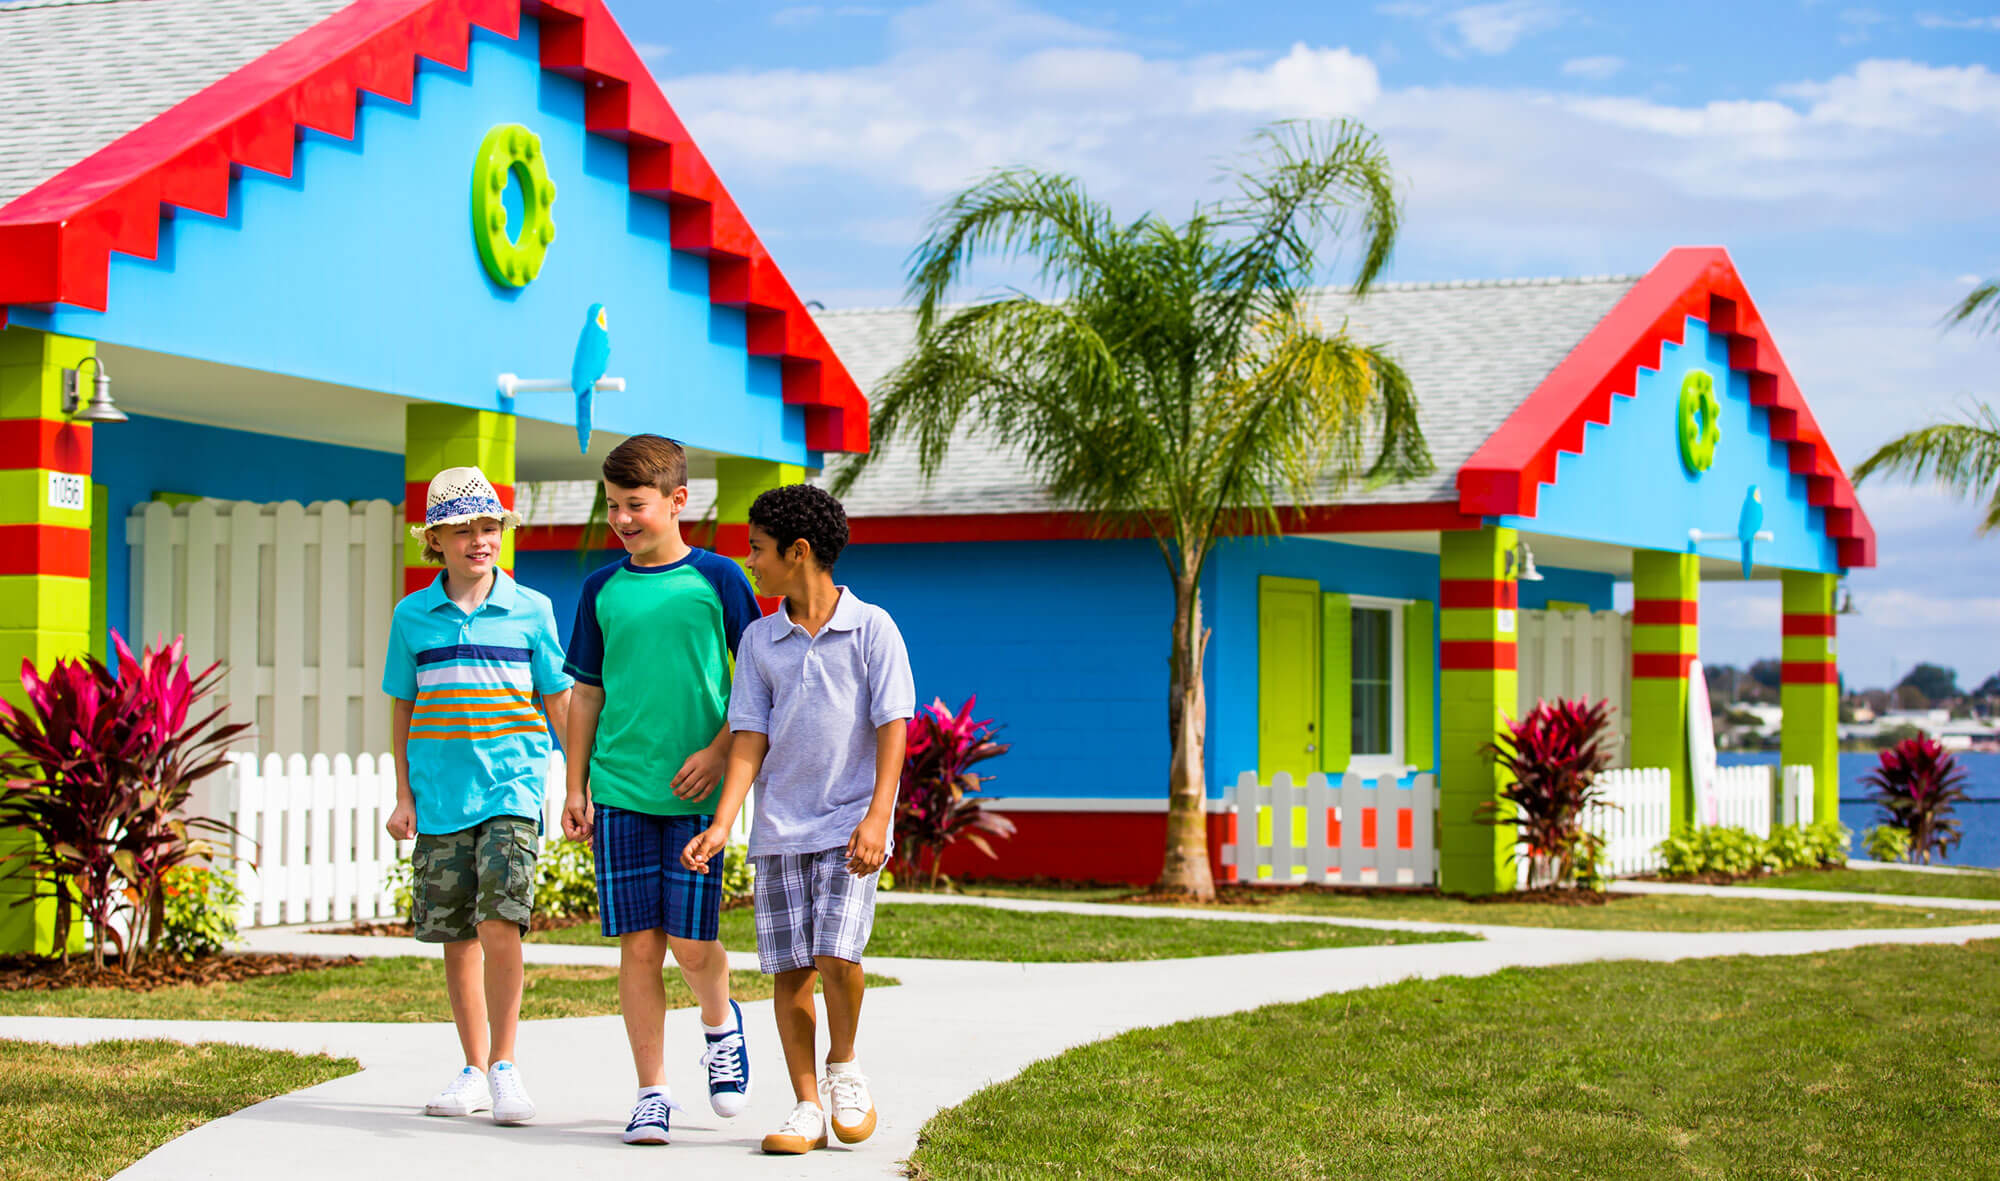 Kids walking outside of Beach Retreat Bungalows at LEGOLAND Florida Resort in Winter Haven, FL